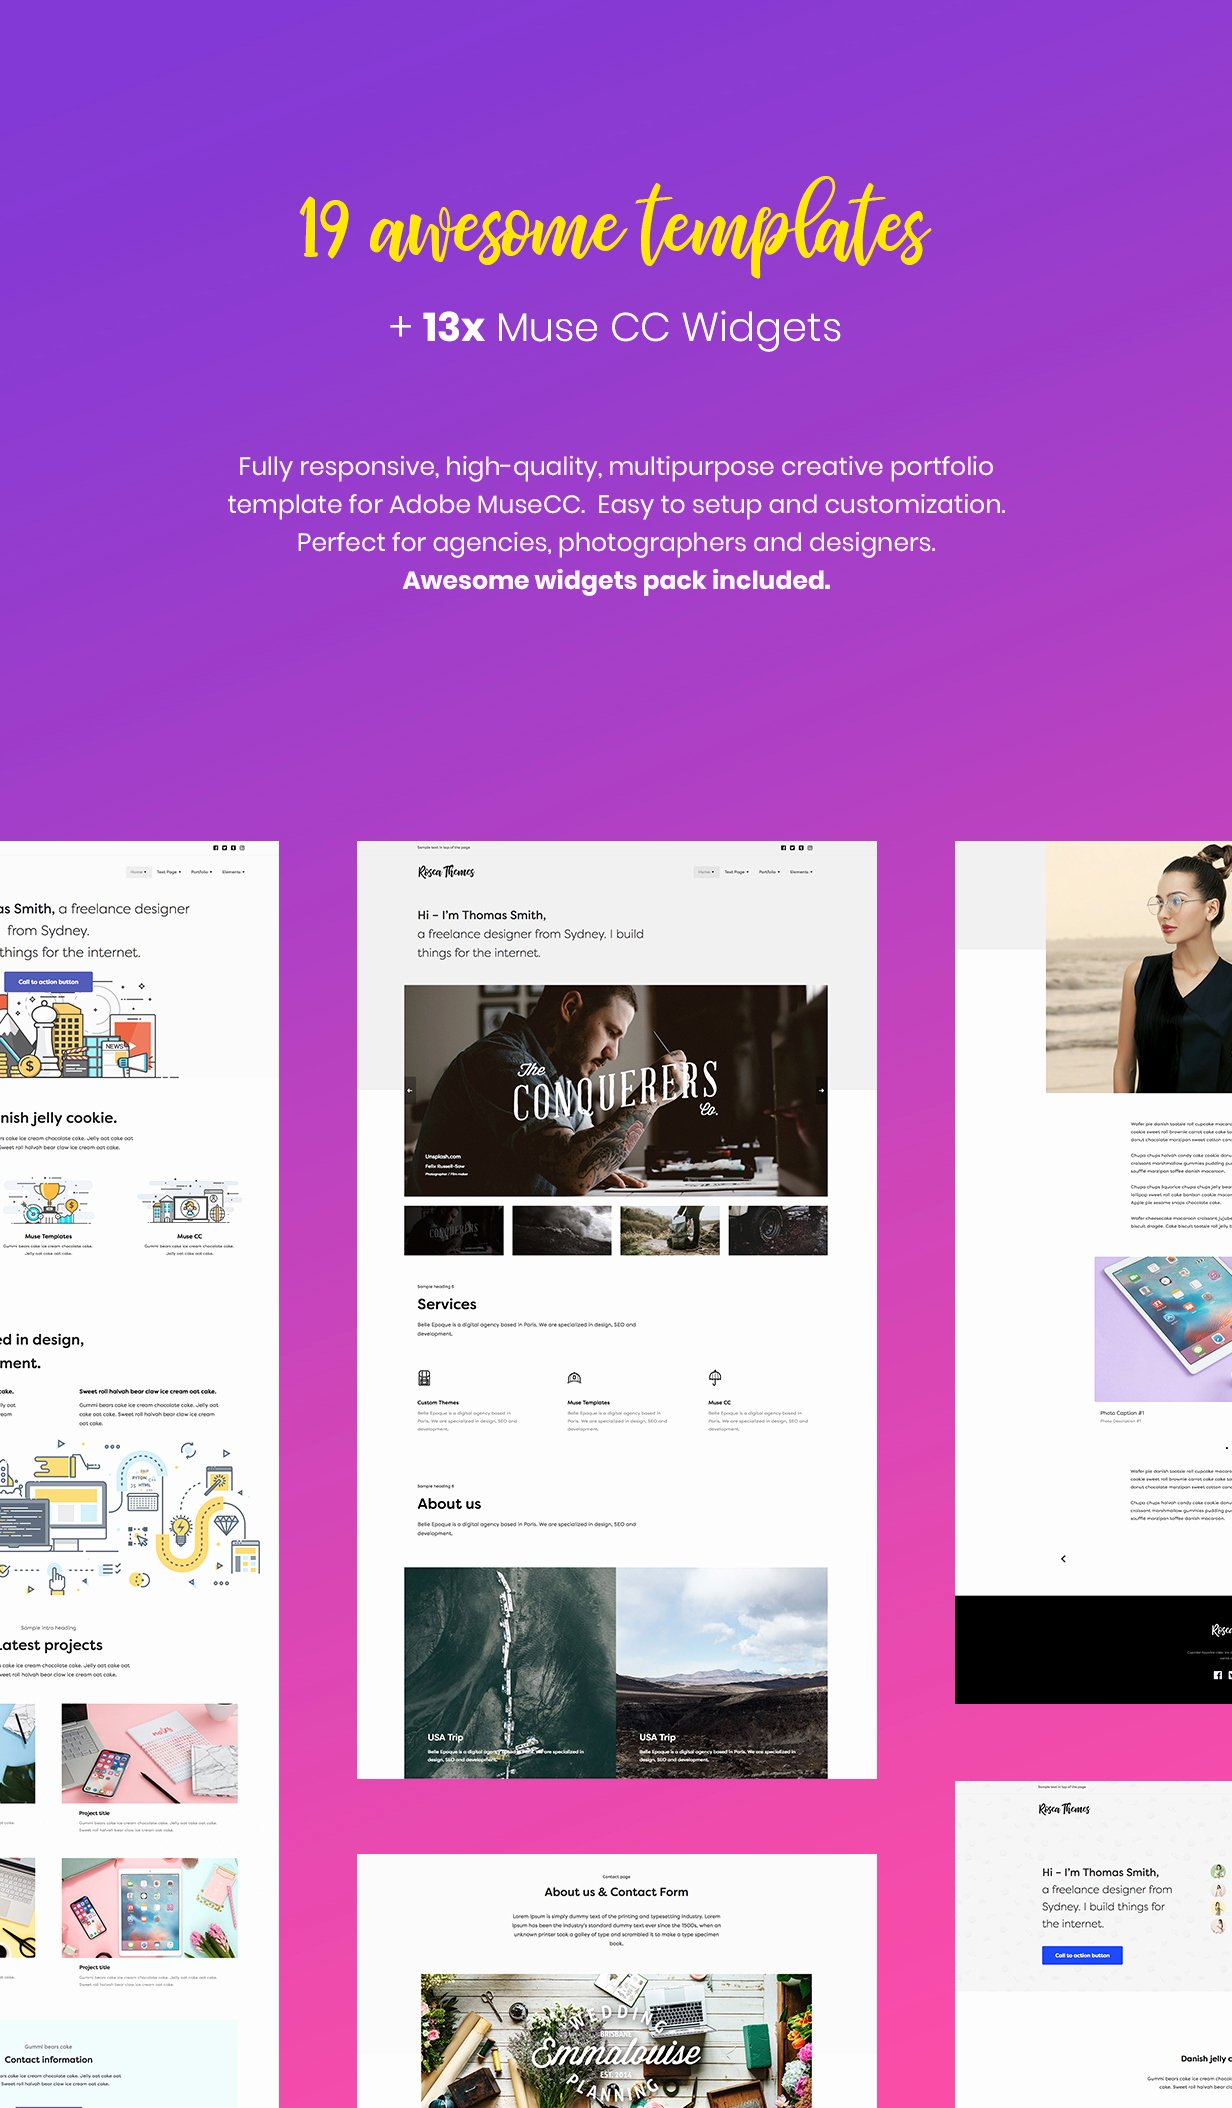 Simple Creative Portfolio Muse Cc Templates and Wid S